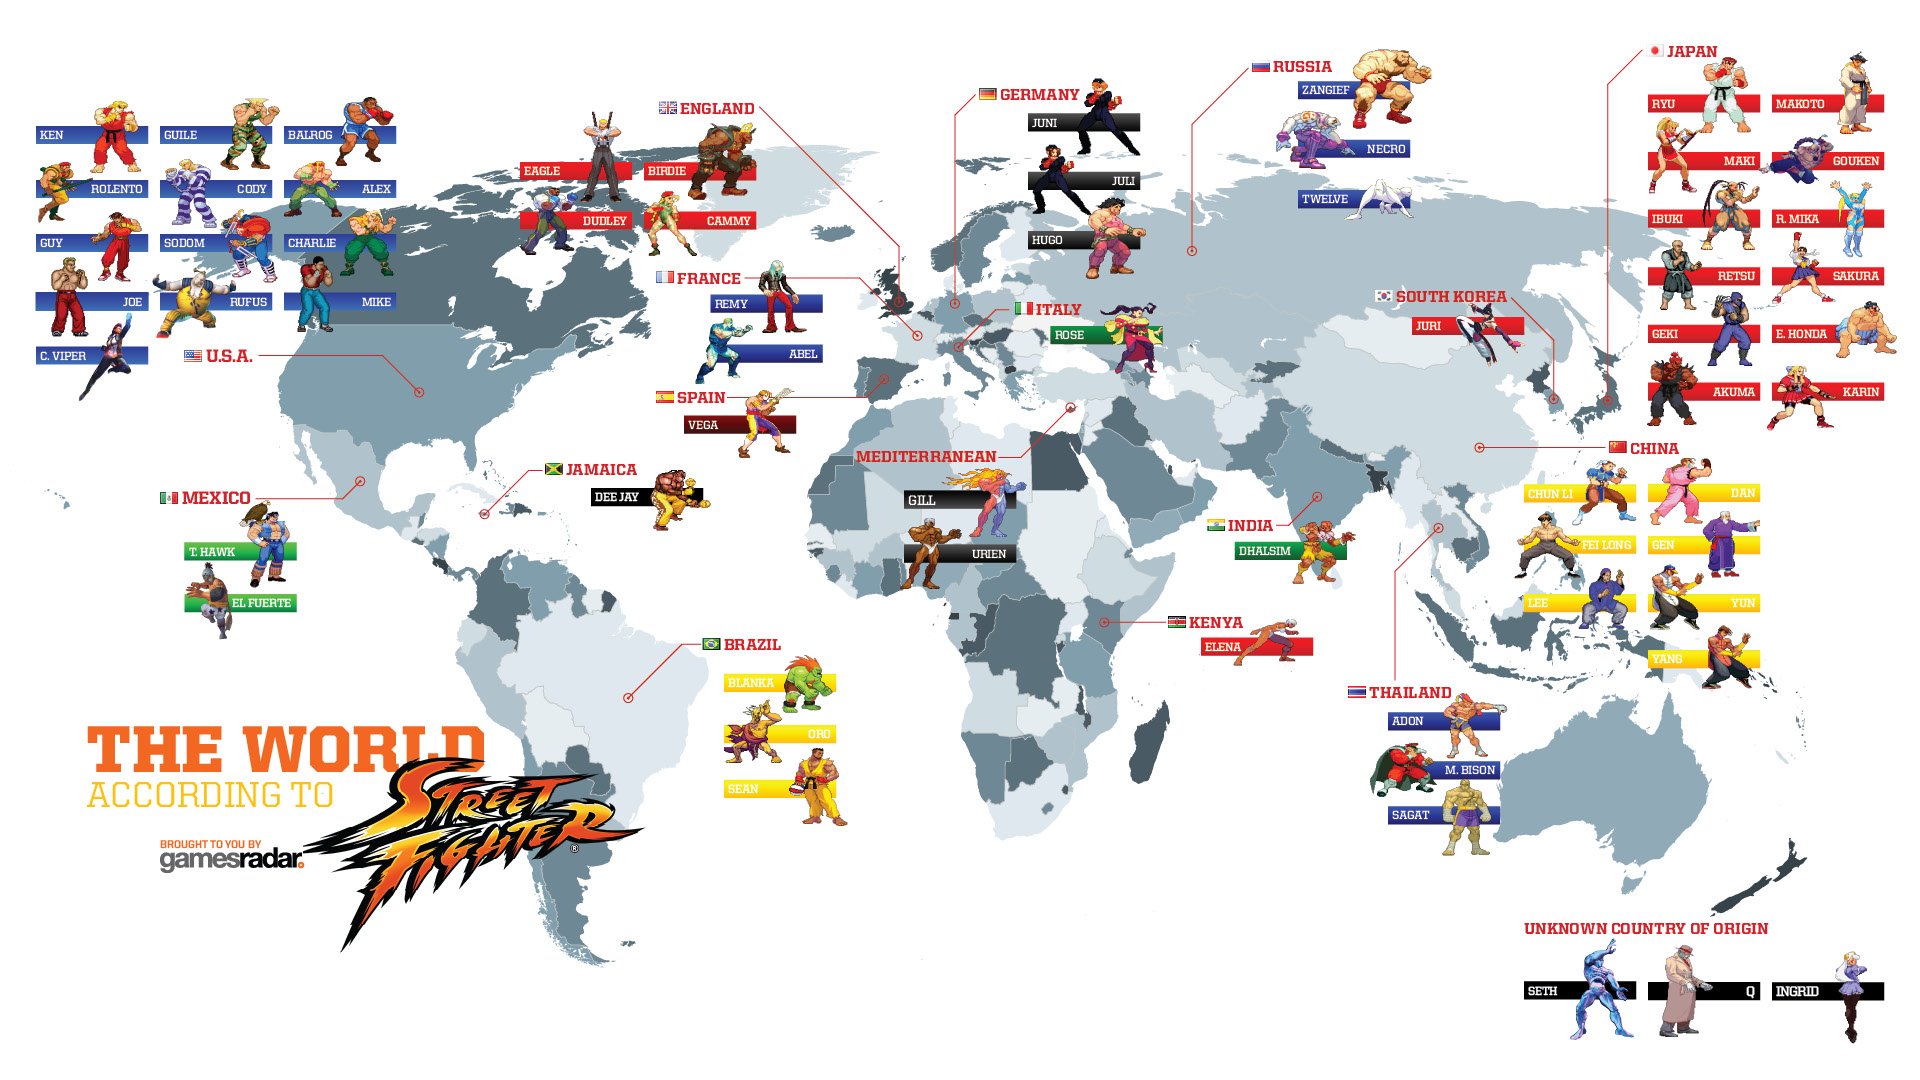 The world according to image gallery know your meme japan russia germany ryu makoto england ken guile necro gouken eagle birdie juli rolento ibuki r the world according gumiabroncs Choice Image